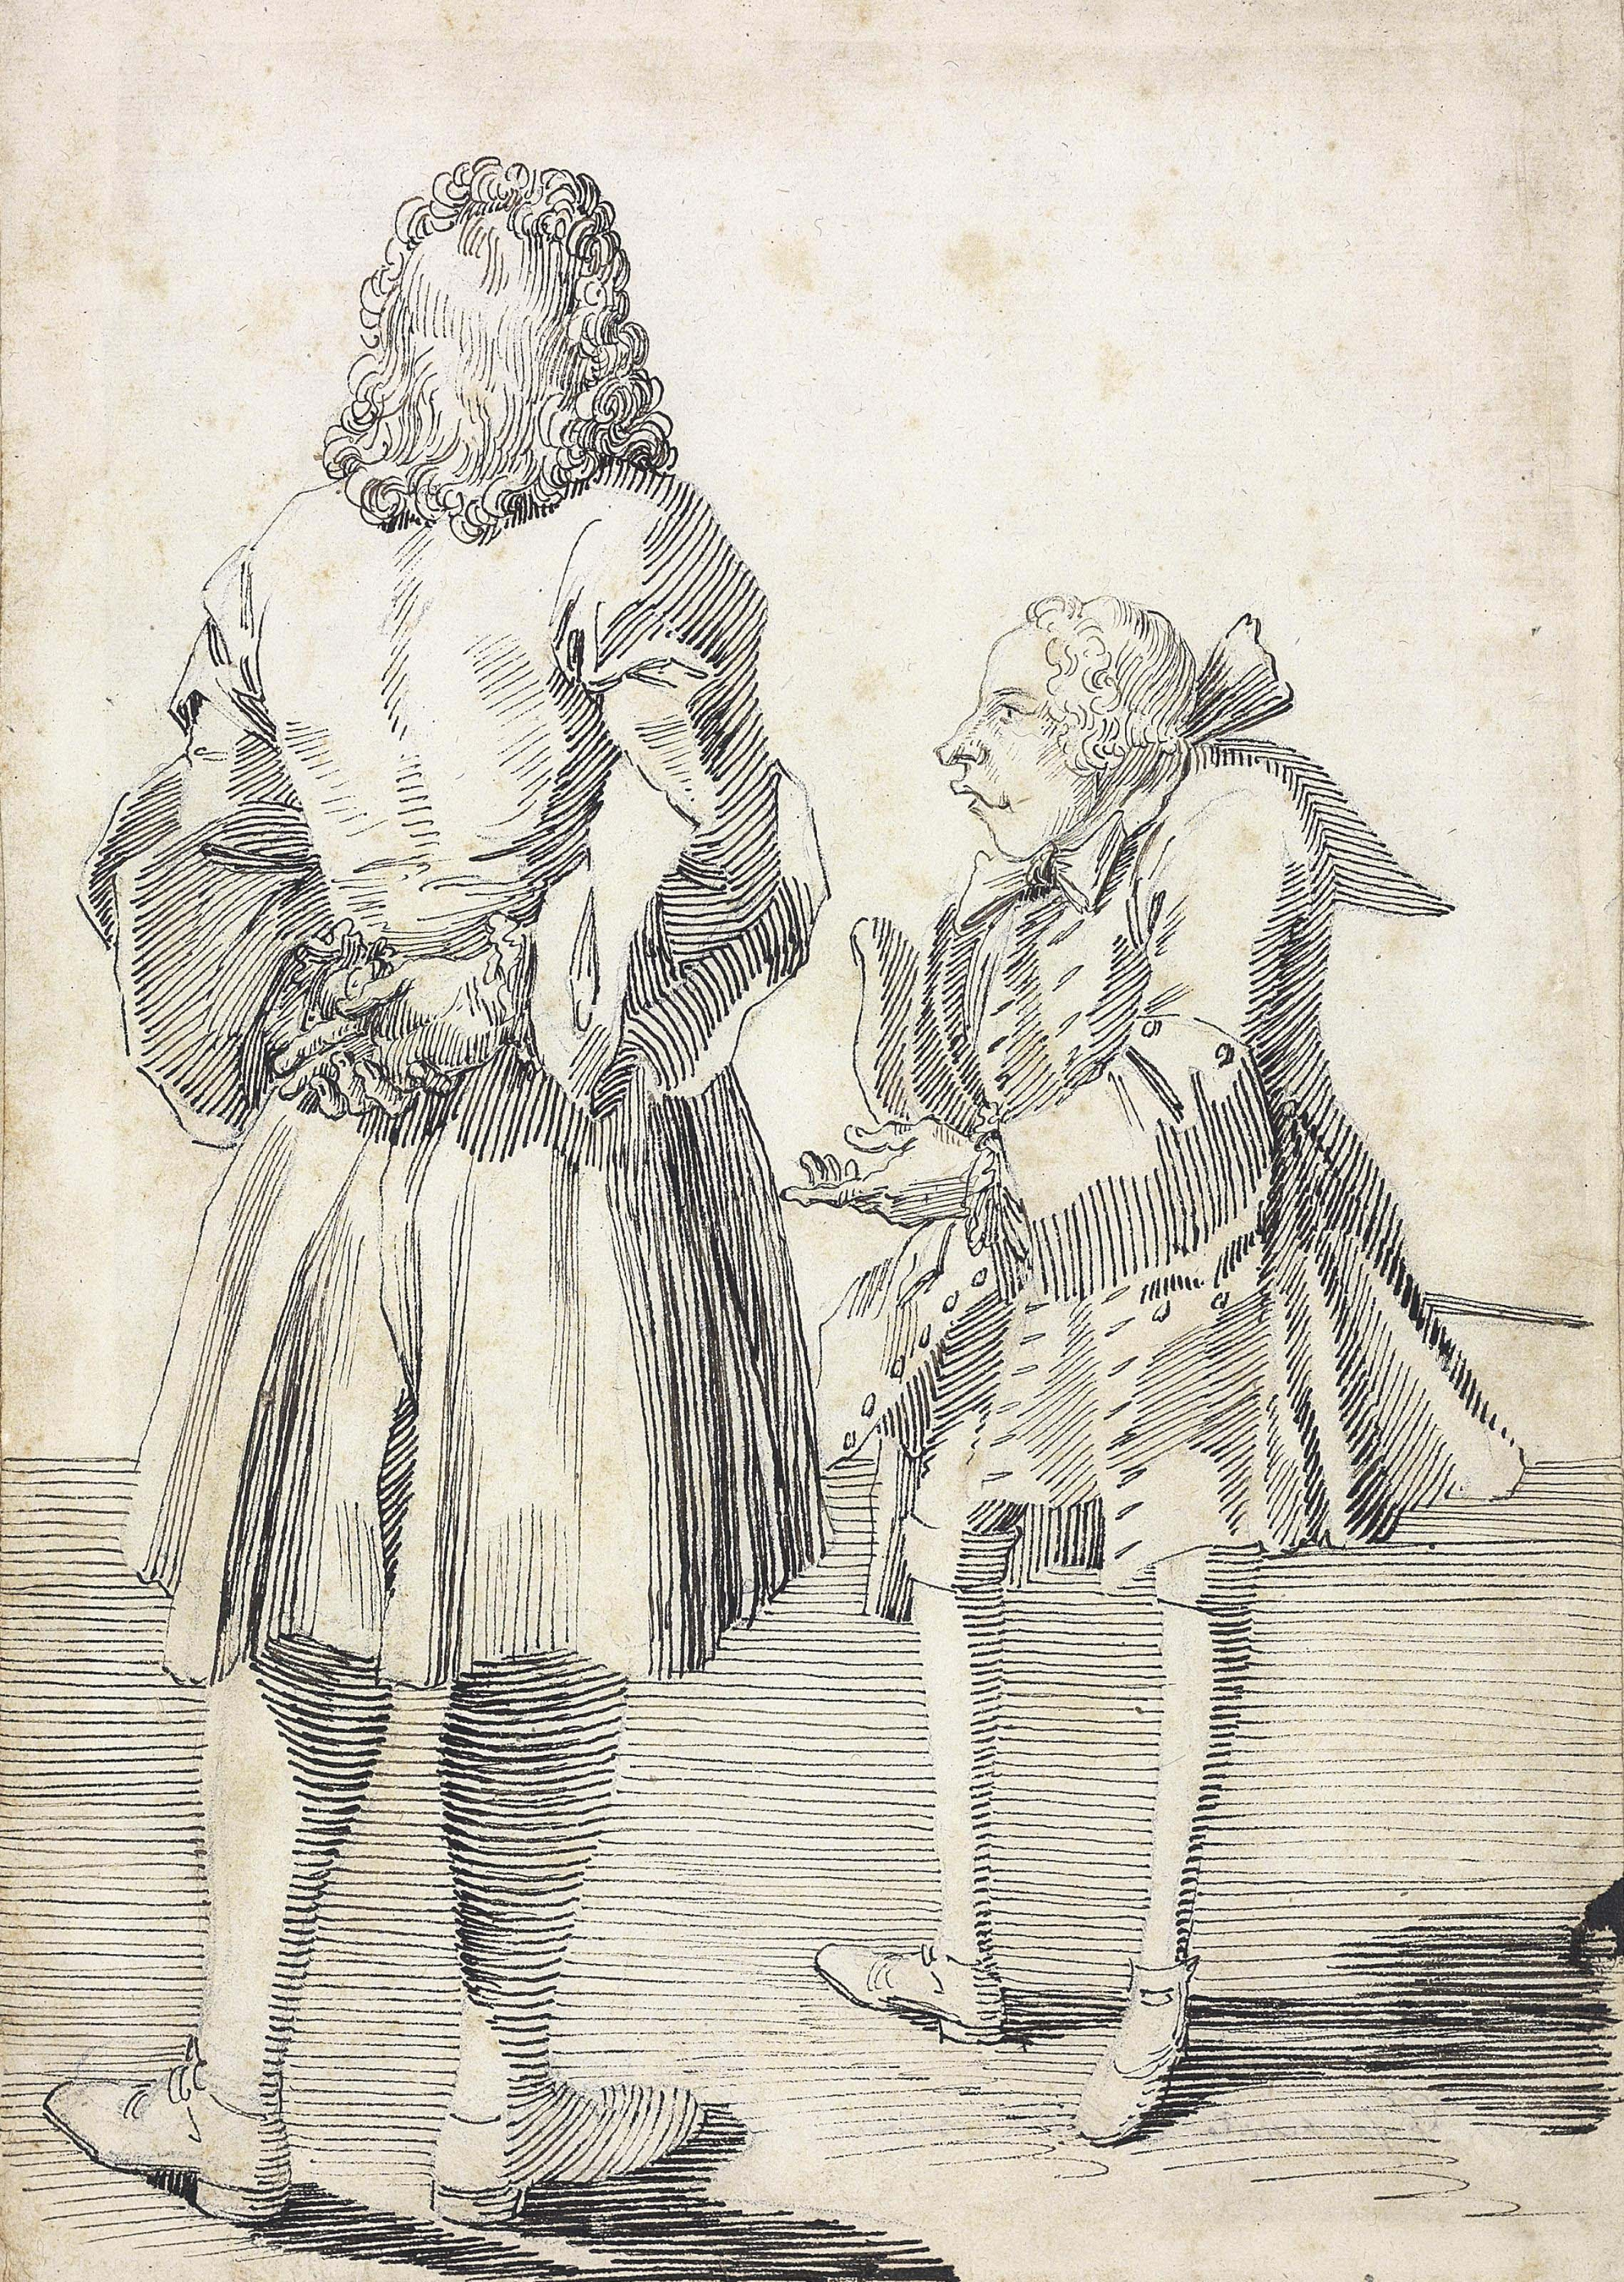 Monsieur de Fontenelle, seen from behind, and Abbé Le Blond